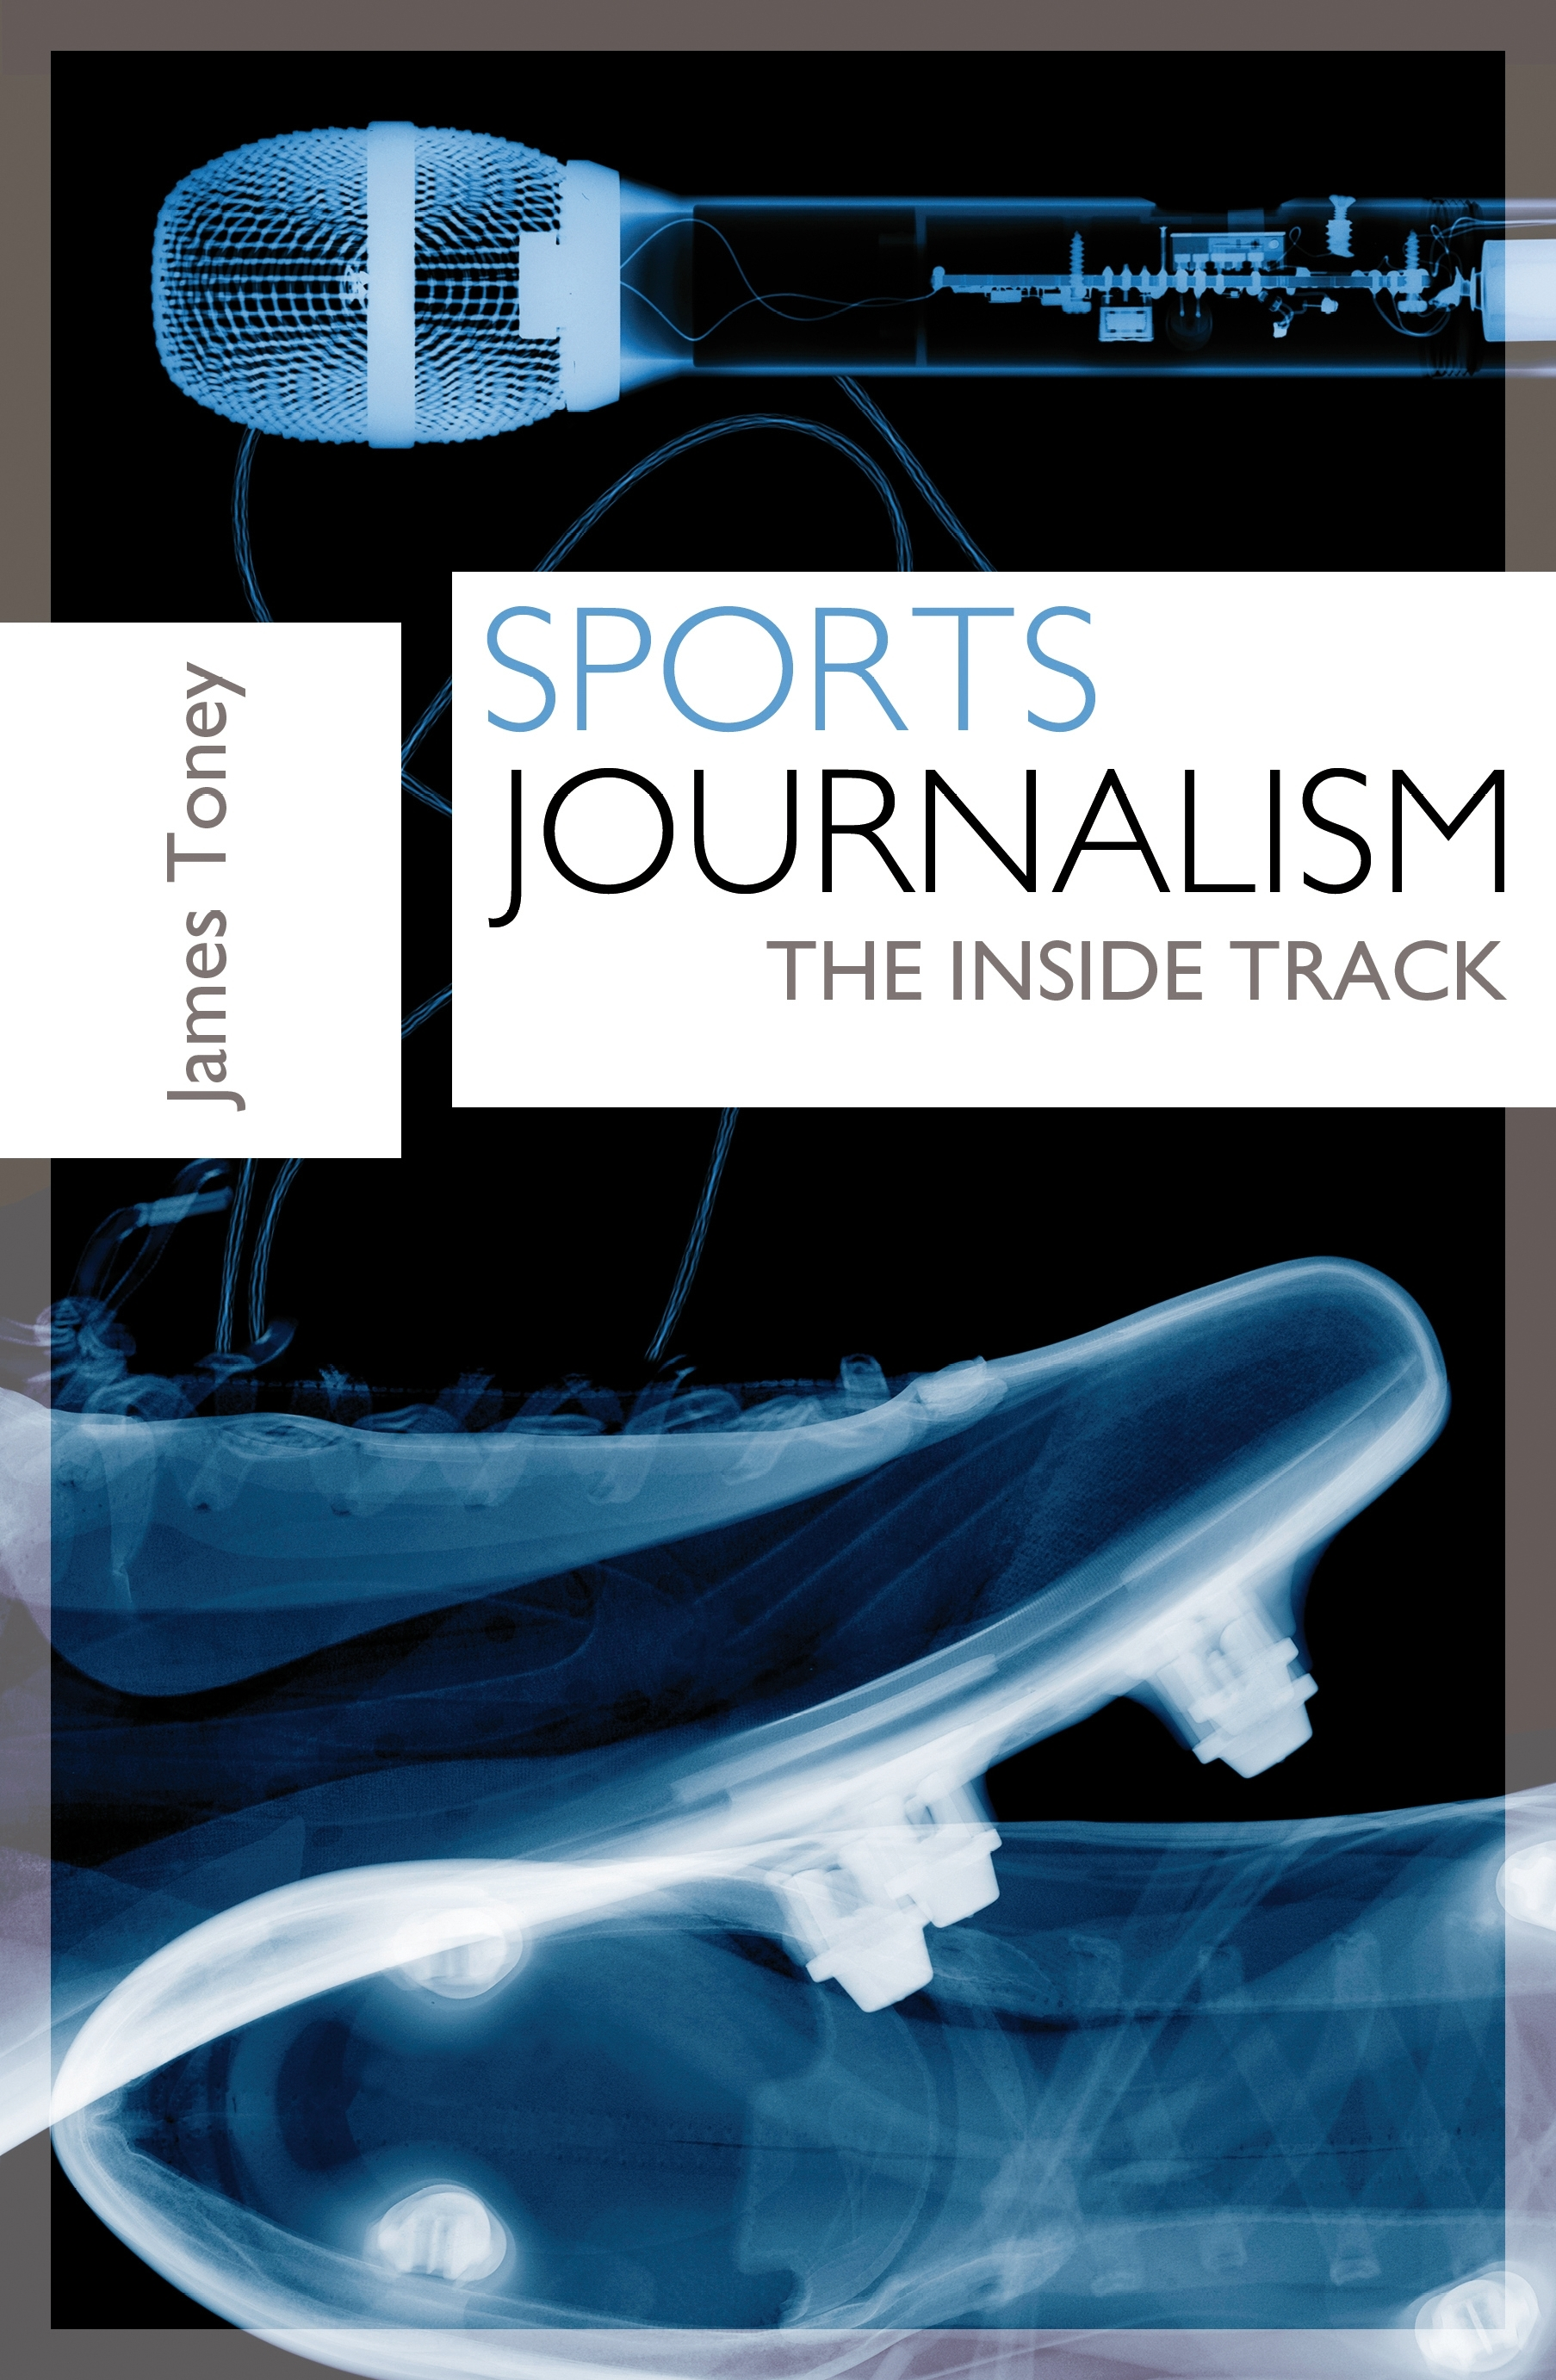 Sports Journalism The Inside Track